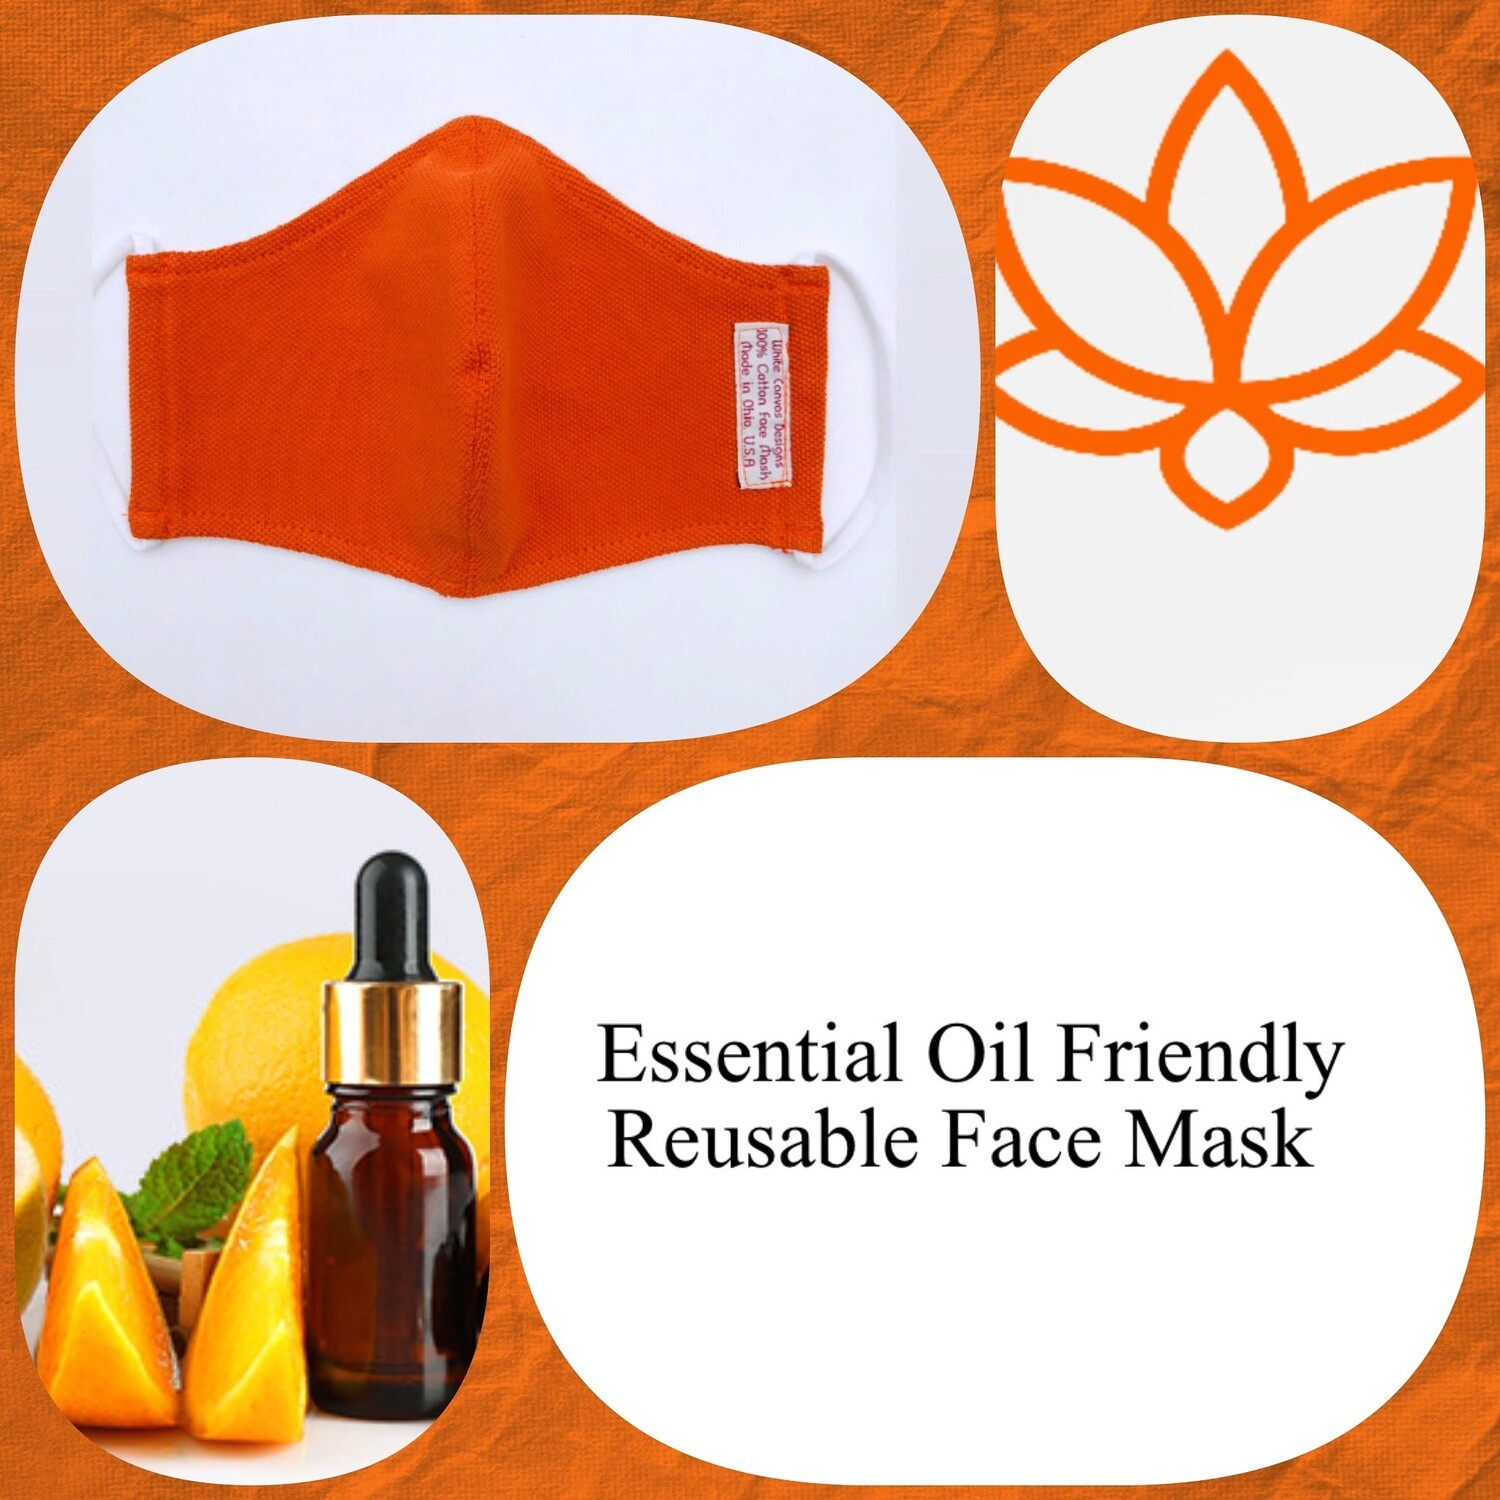 Essentials Oil Friendly Face Mask